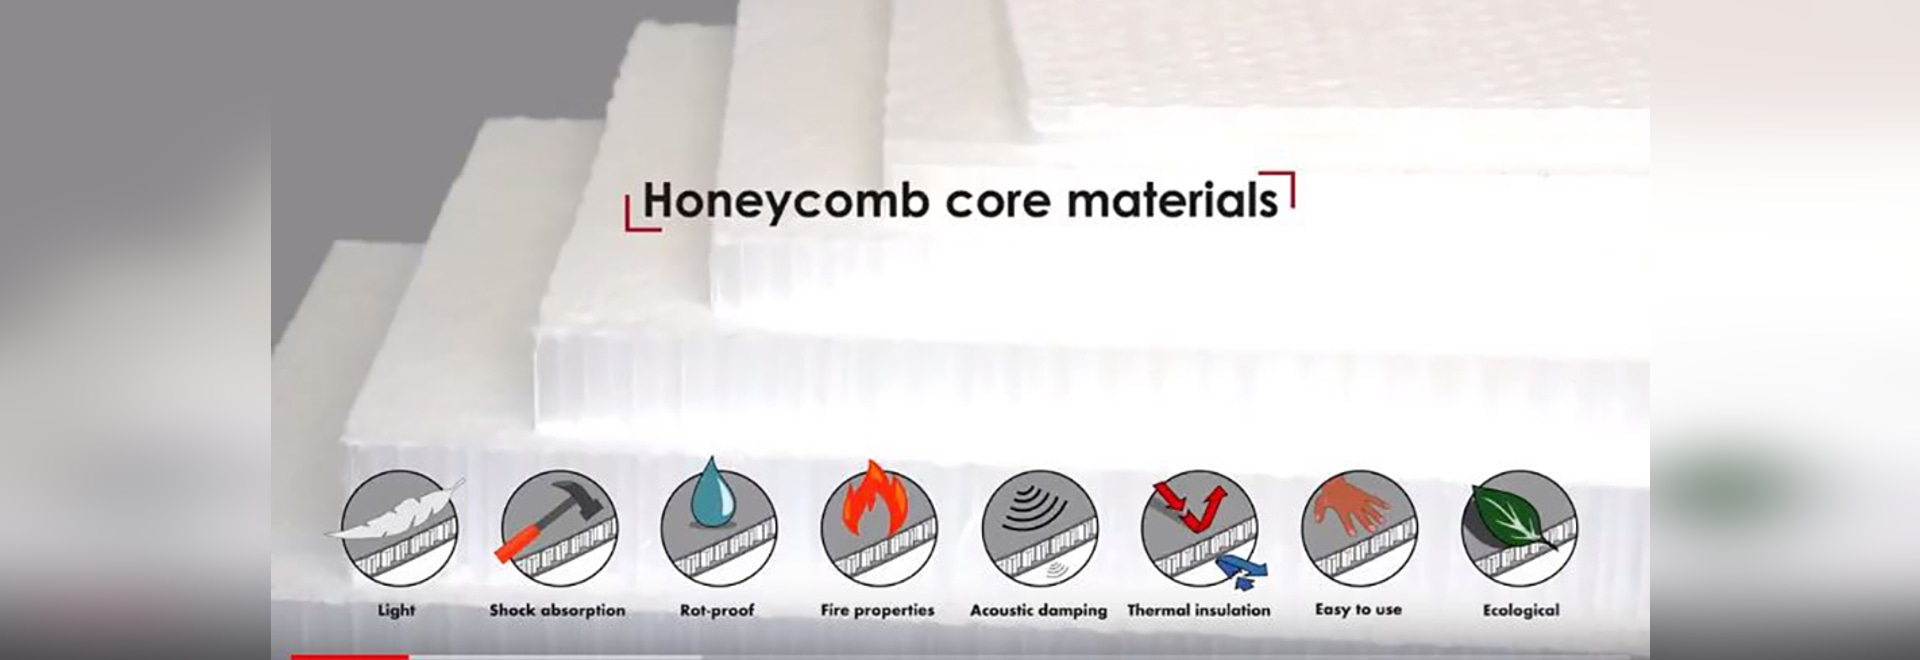 Discover products, services, applications with honeycomb panels